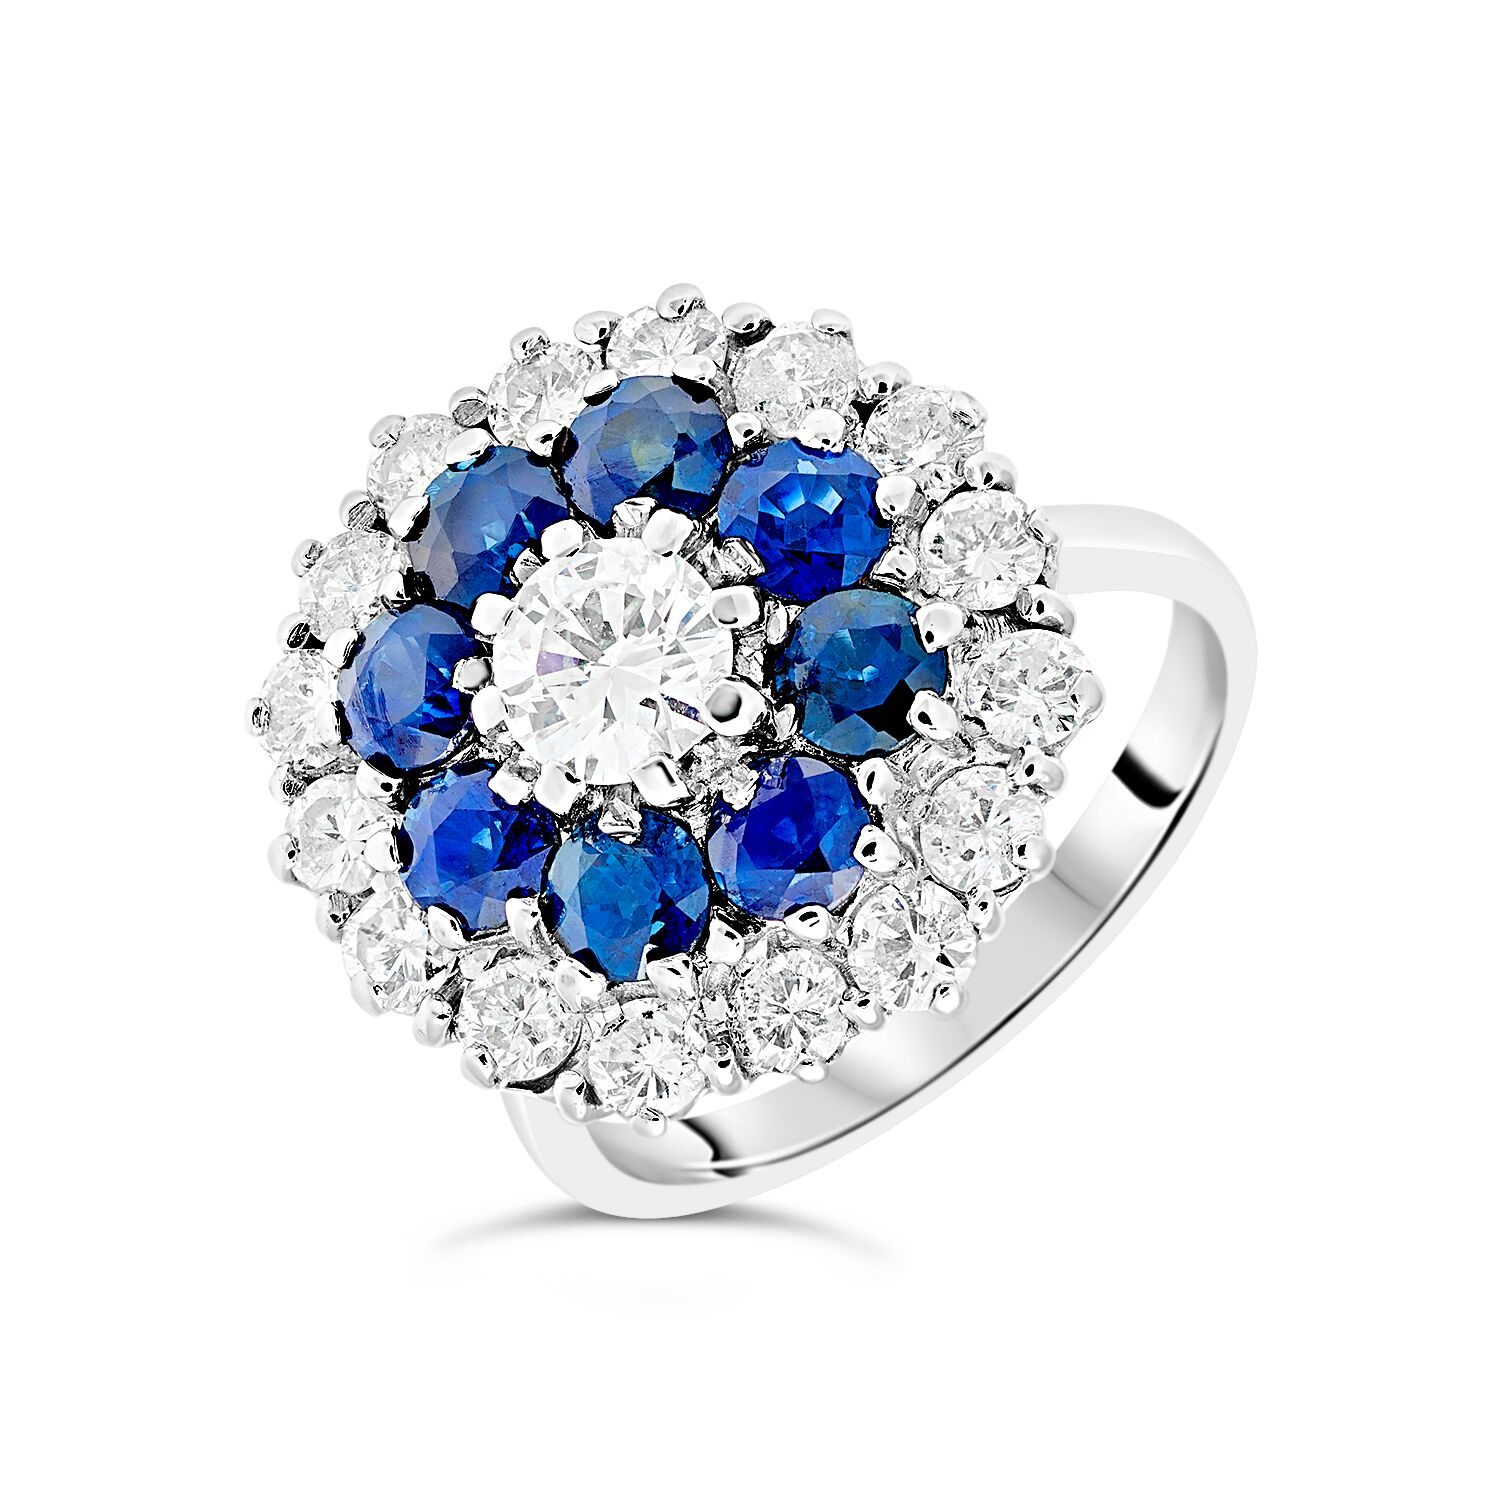 Colourful vintage ring